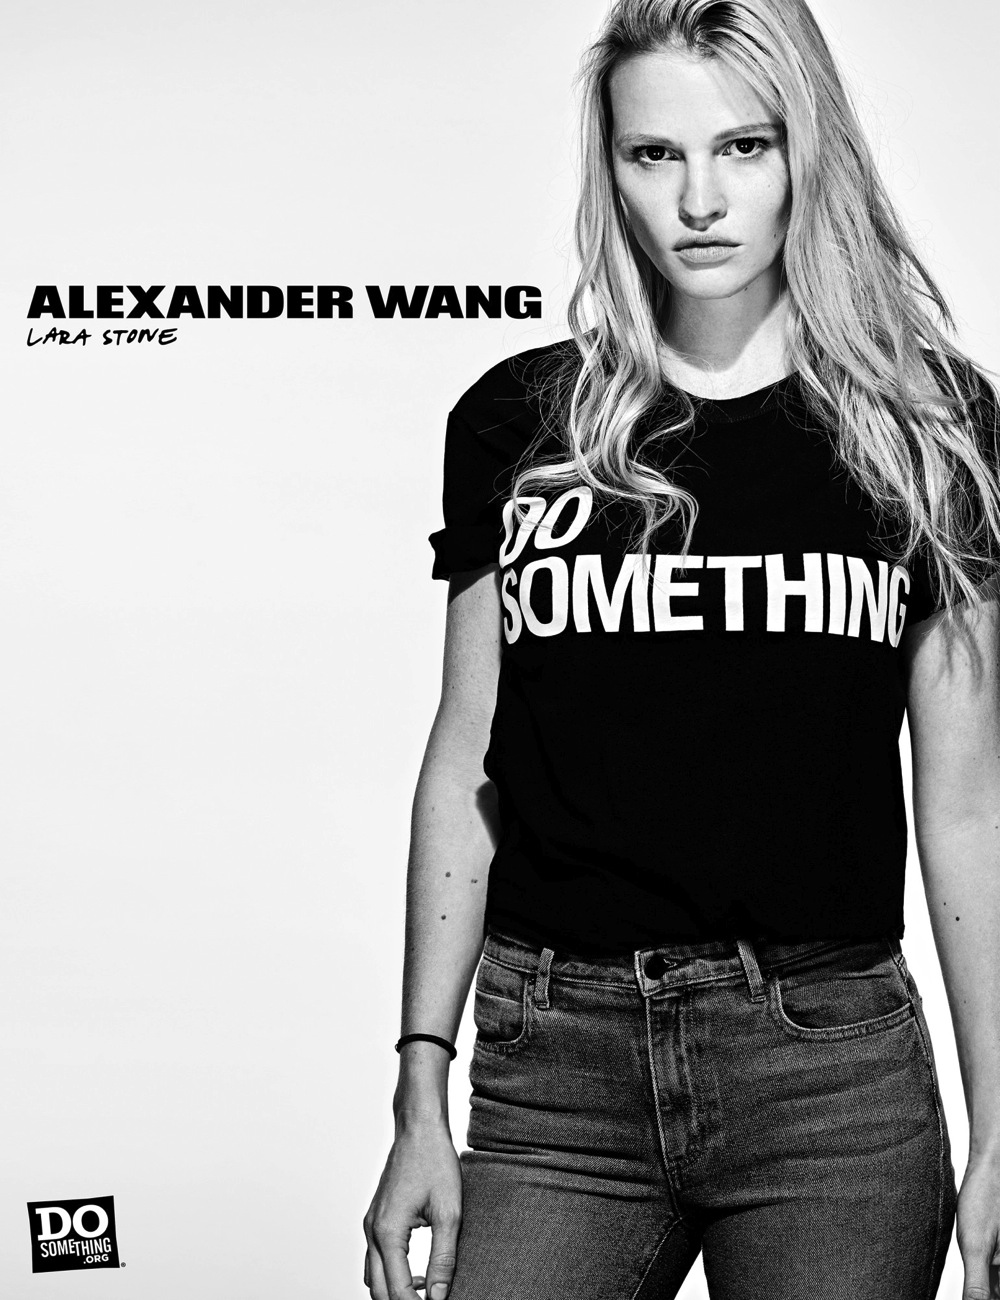 Lara Stone wears Alexander Wang x DoSomething